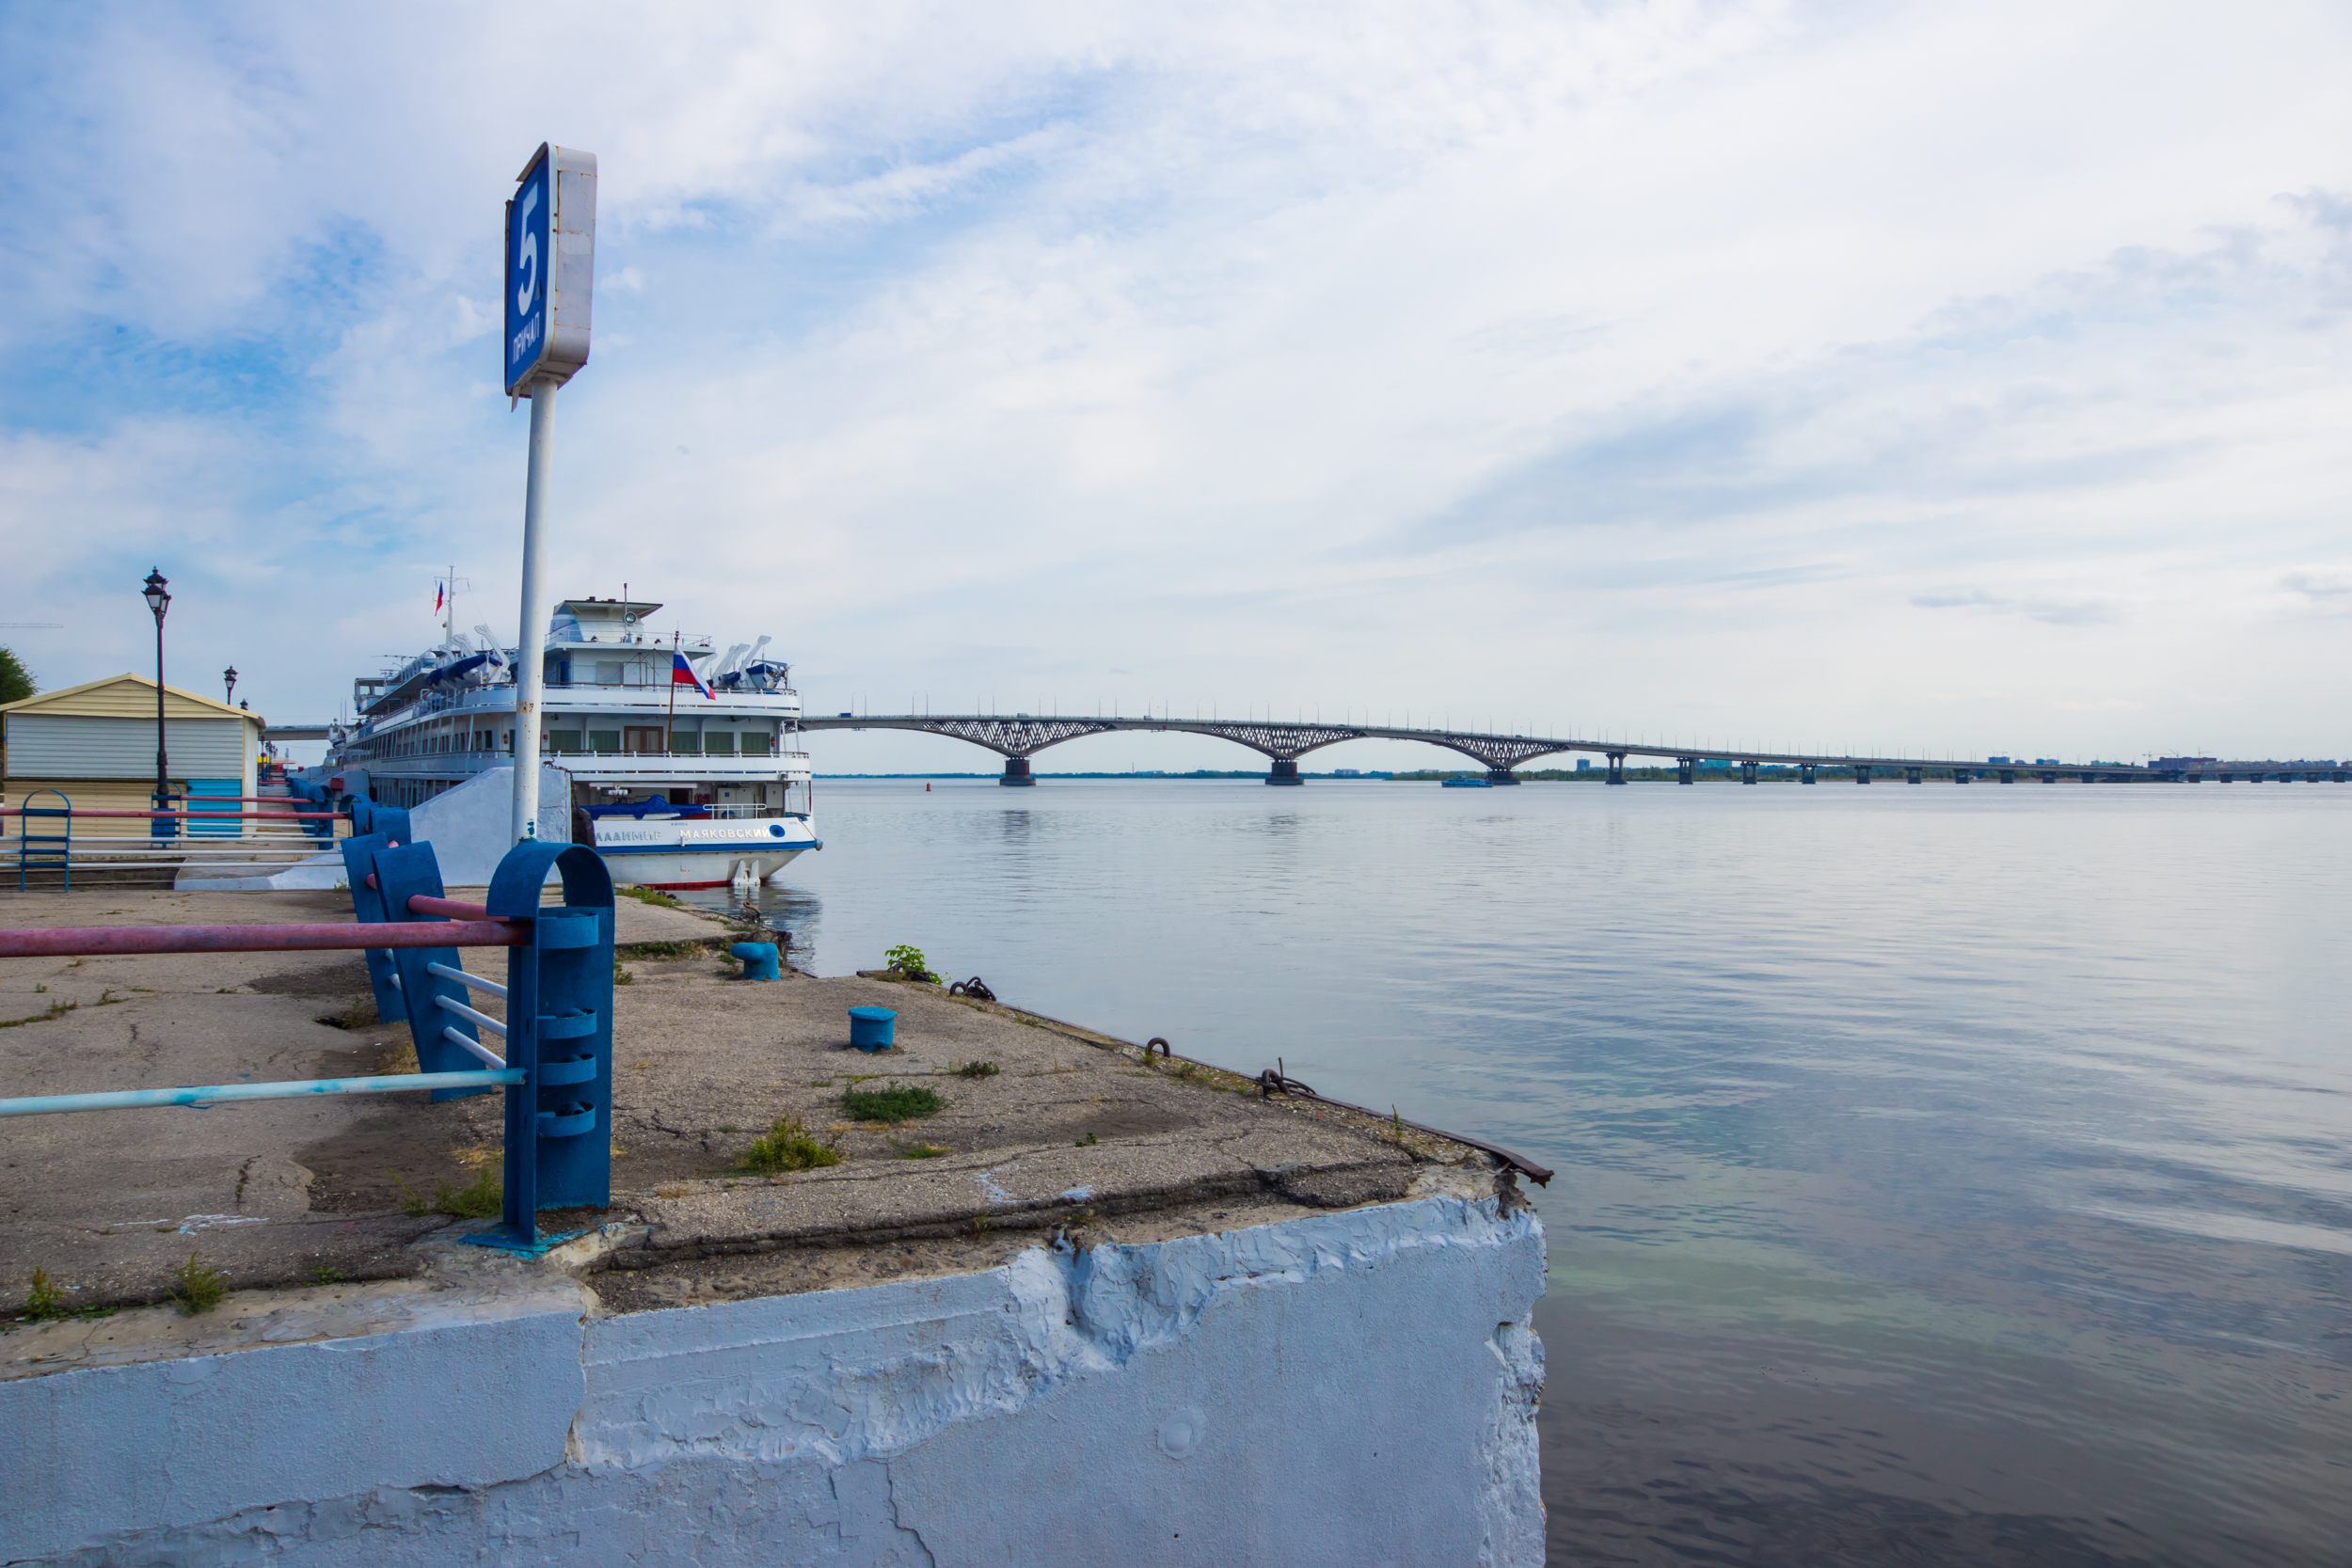 View of the Saratov bridge